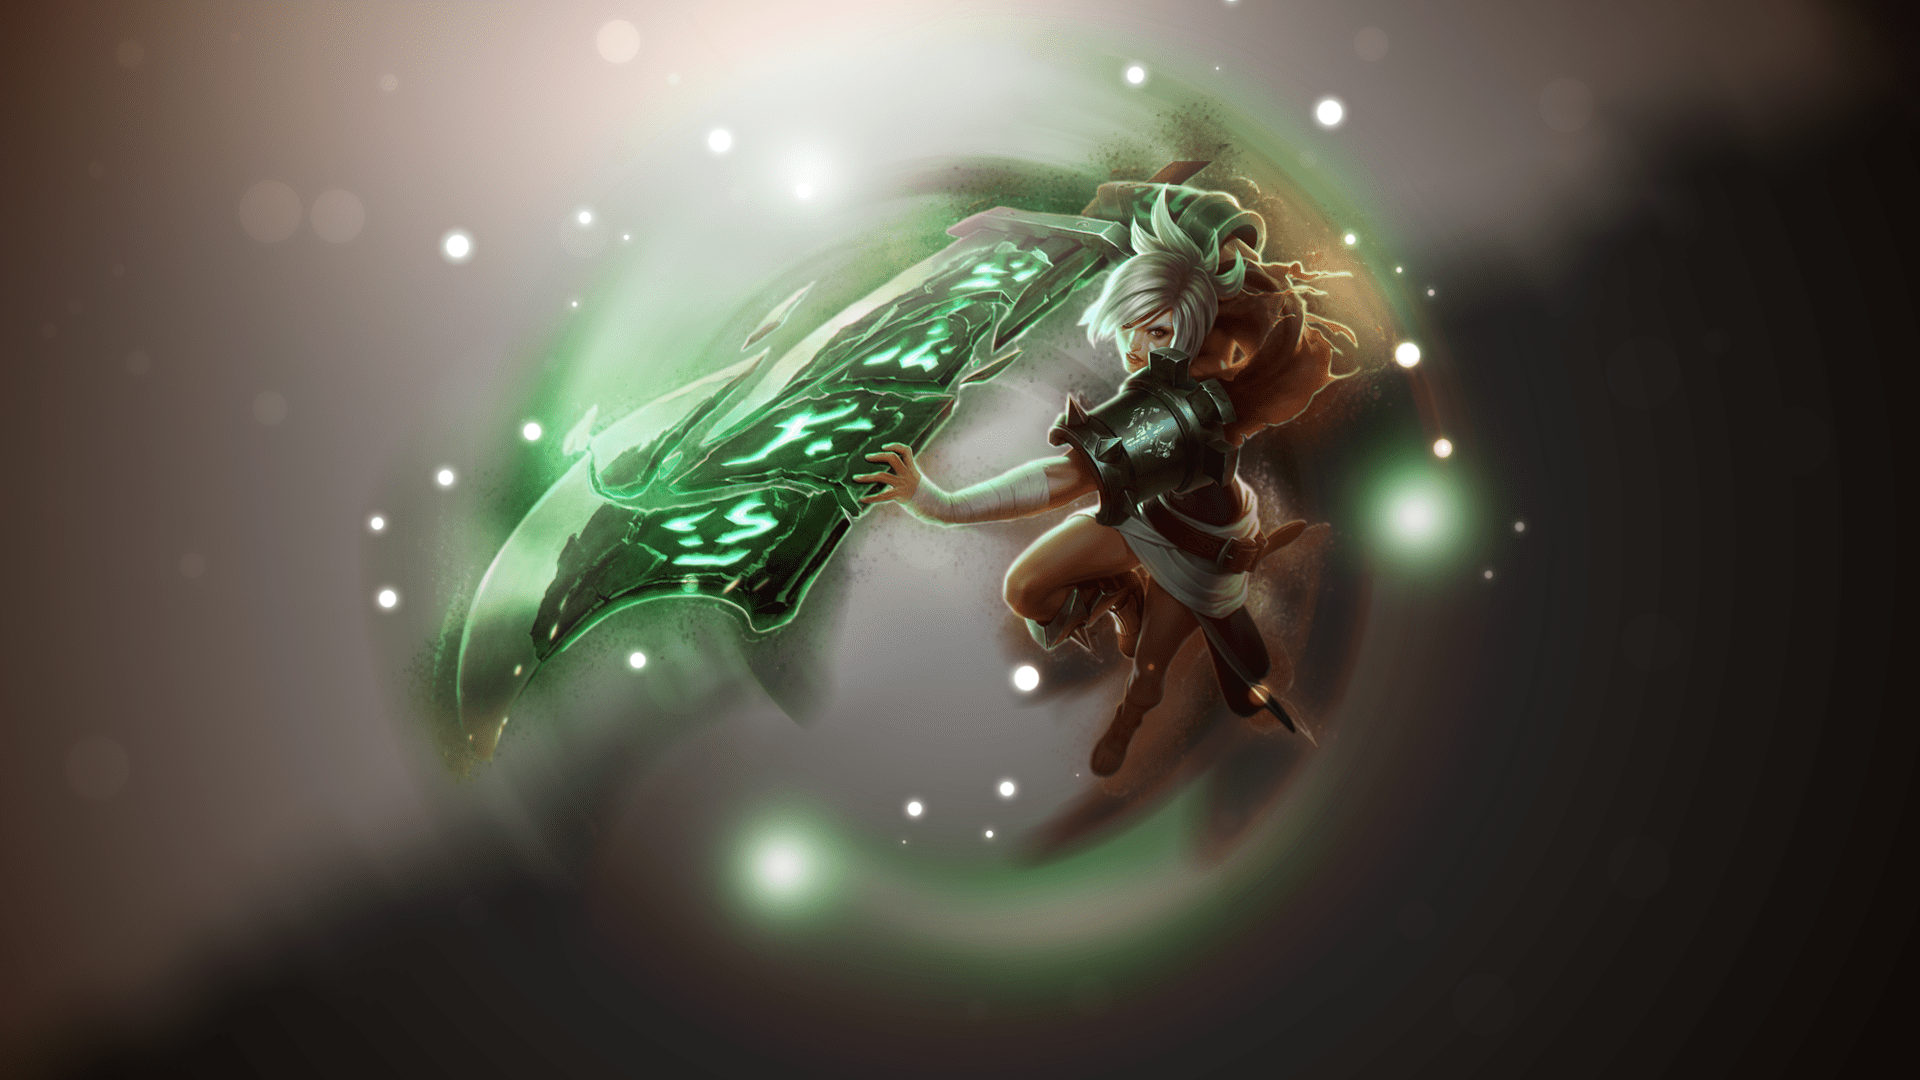 Lol Wallpapers Hd 1980x1080 Riven Lolwallpapers